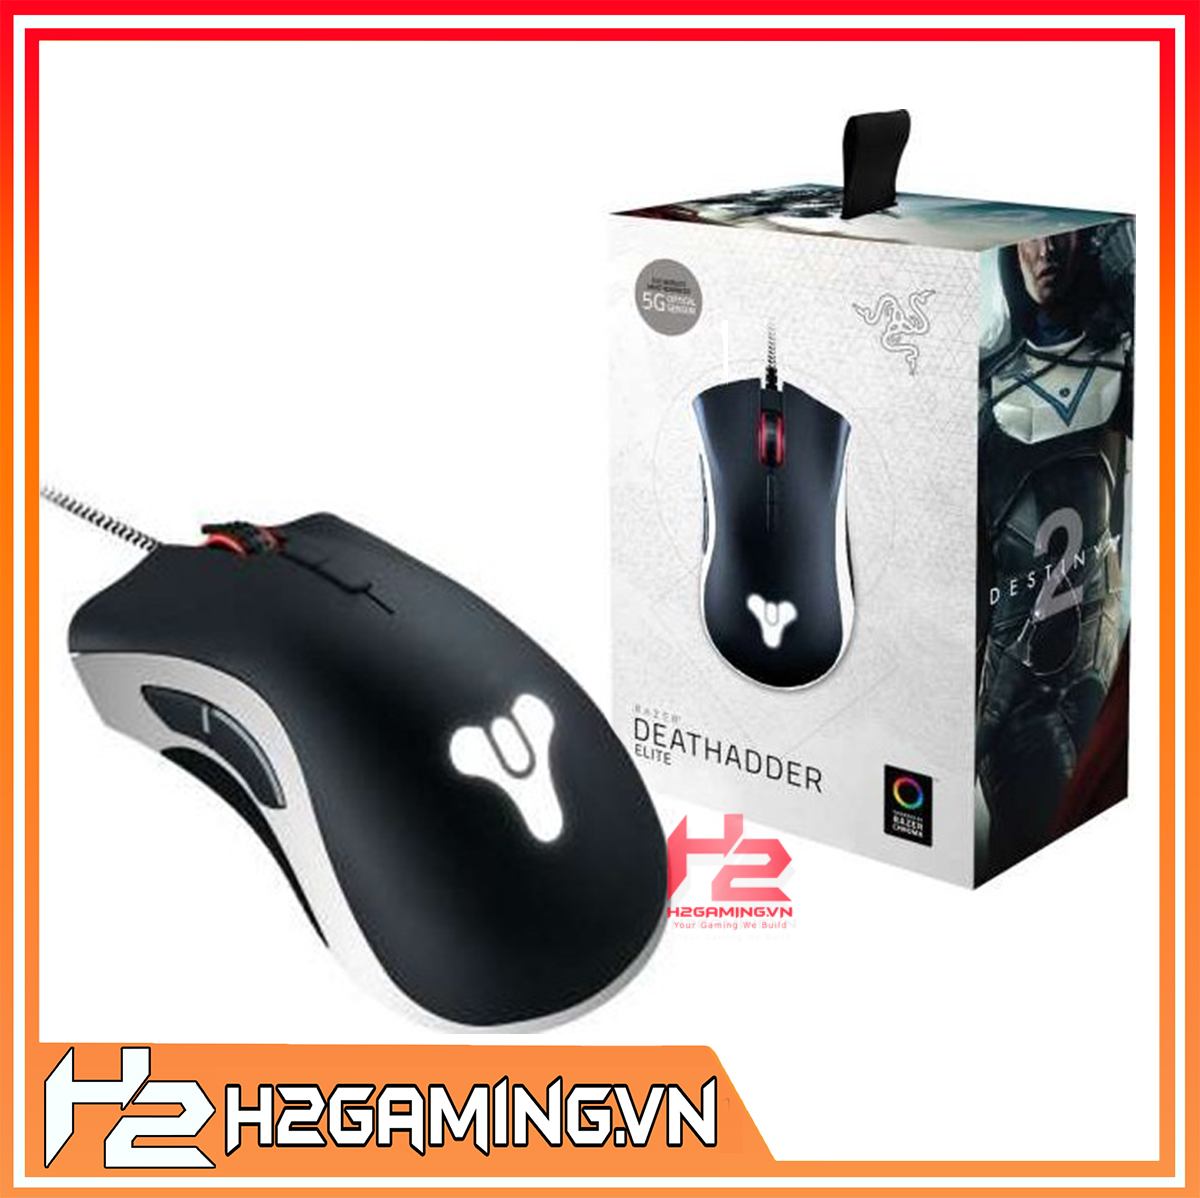 Razer_Deathadder_Elite_-_Destiny_2_3